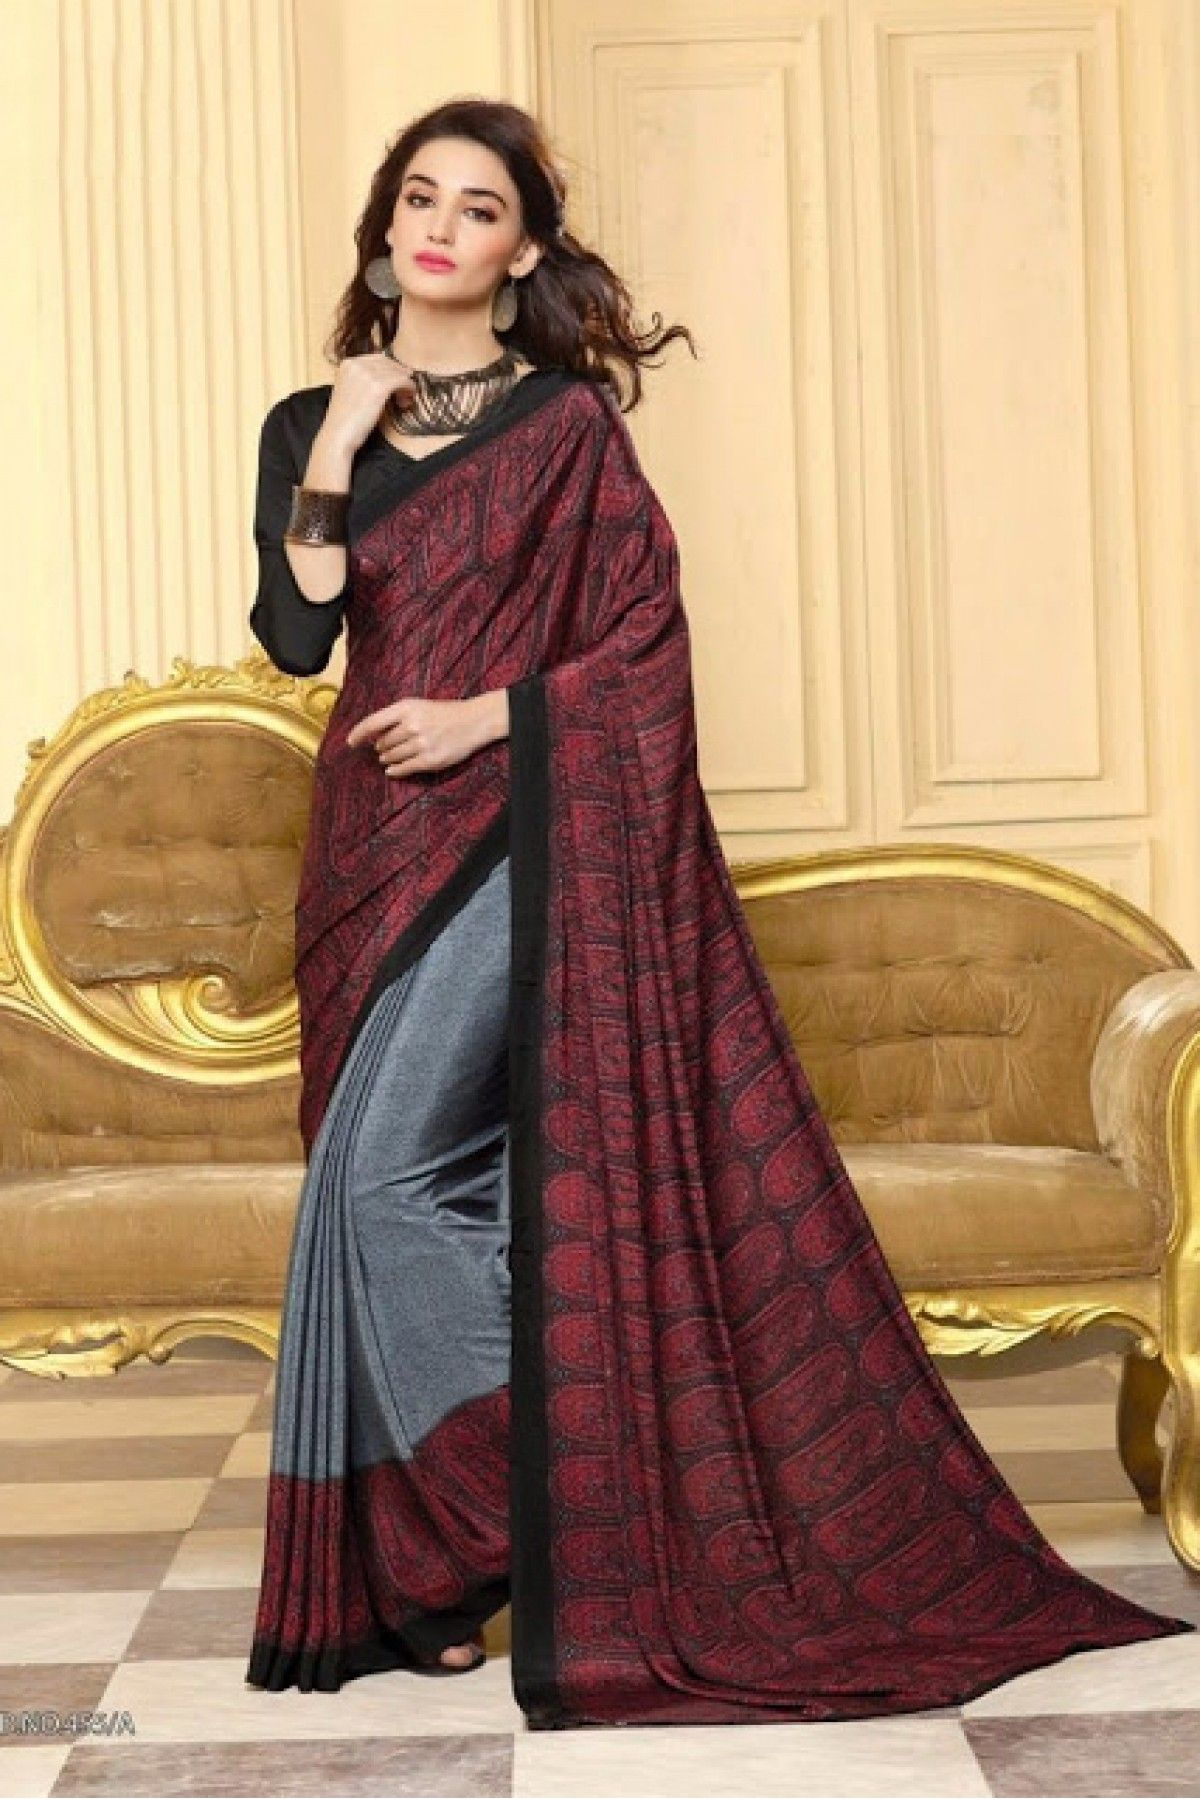 b3447798de8935 Grey and Brown Colour Crepe Silk Fabric Printed Saree Comes With Matching  Blouse. This Saree